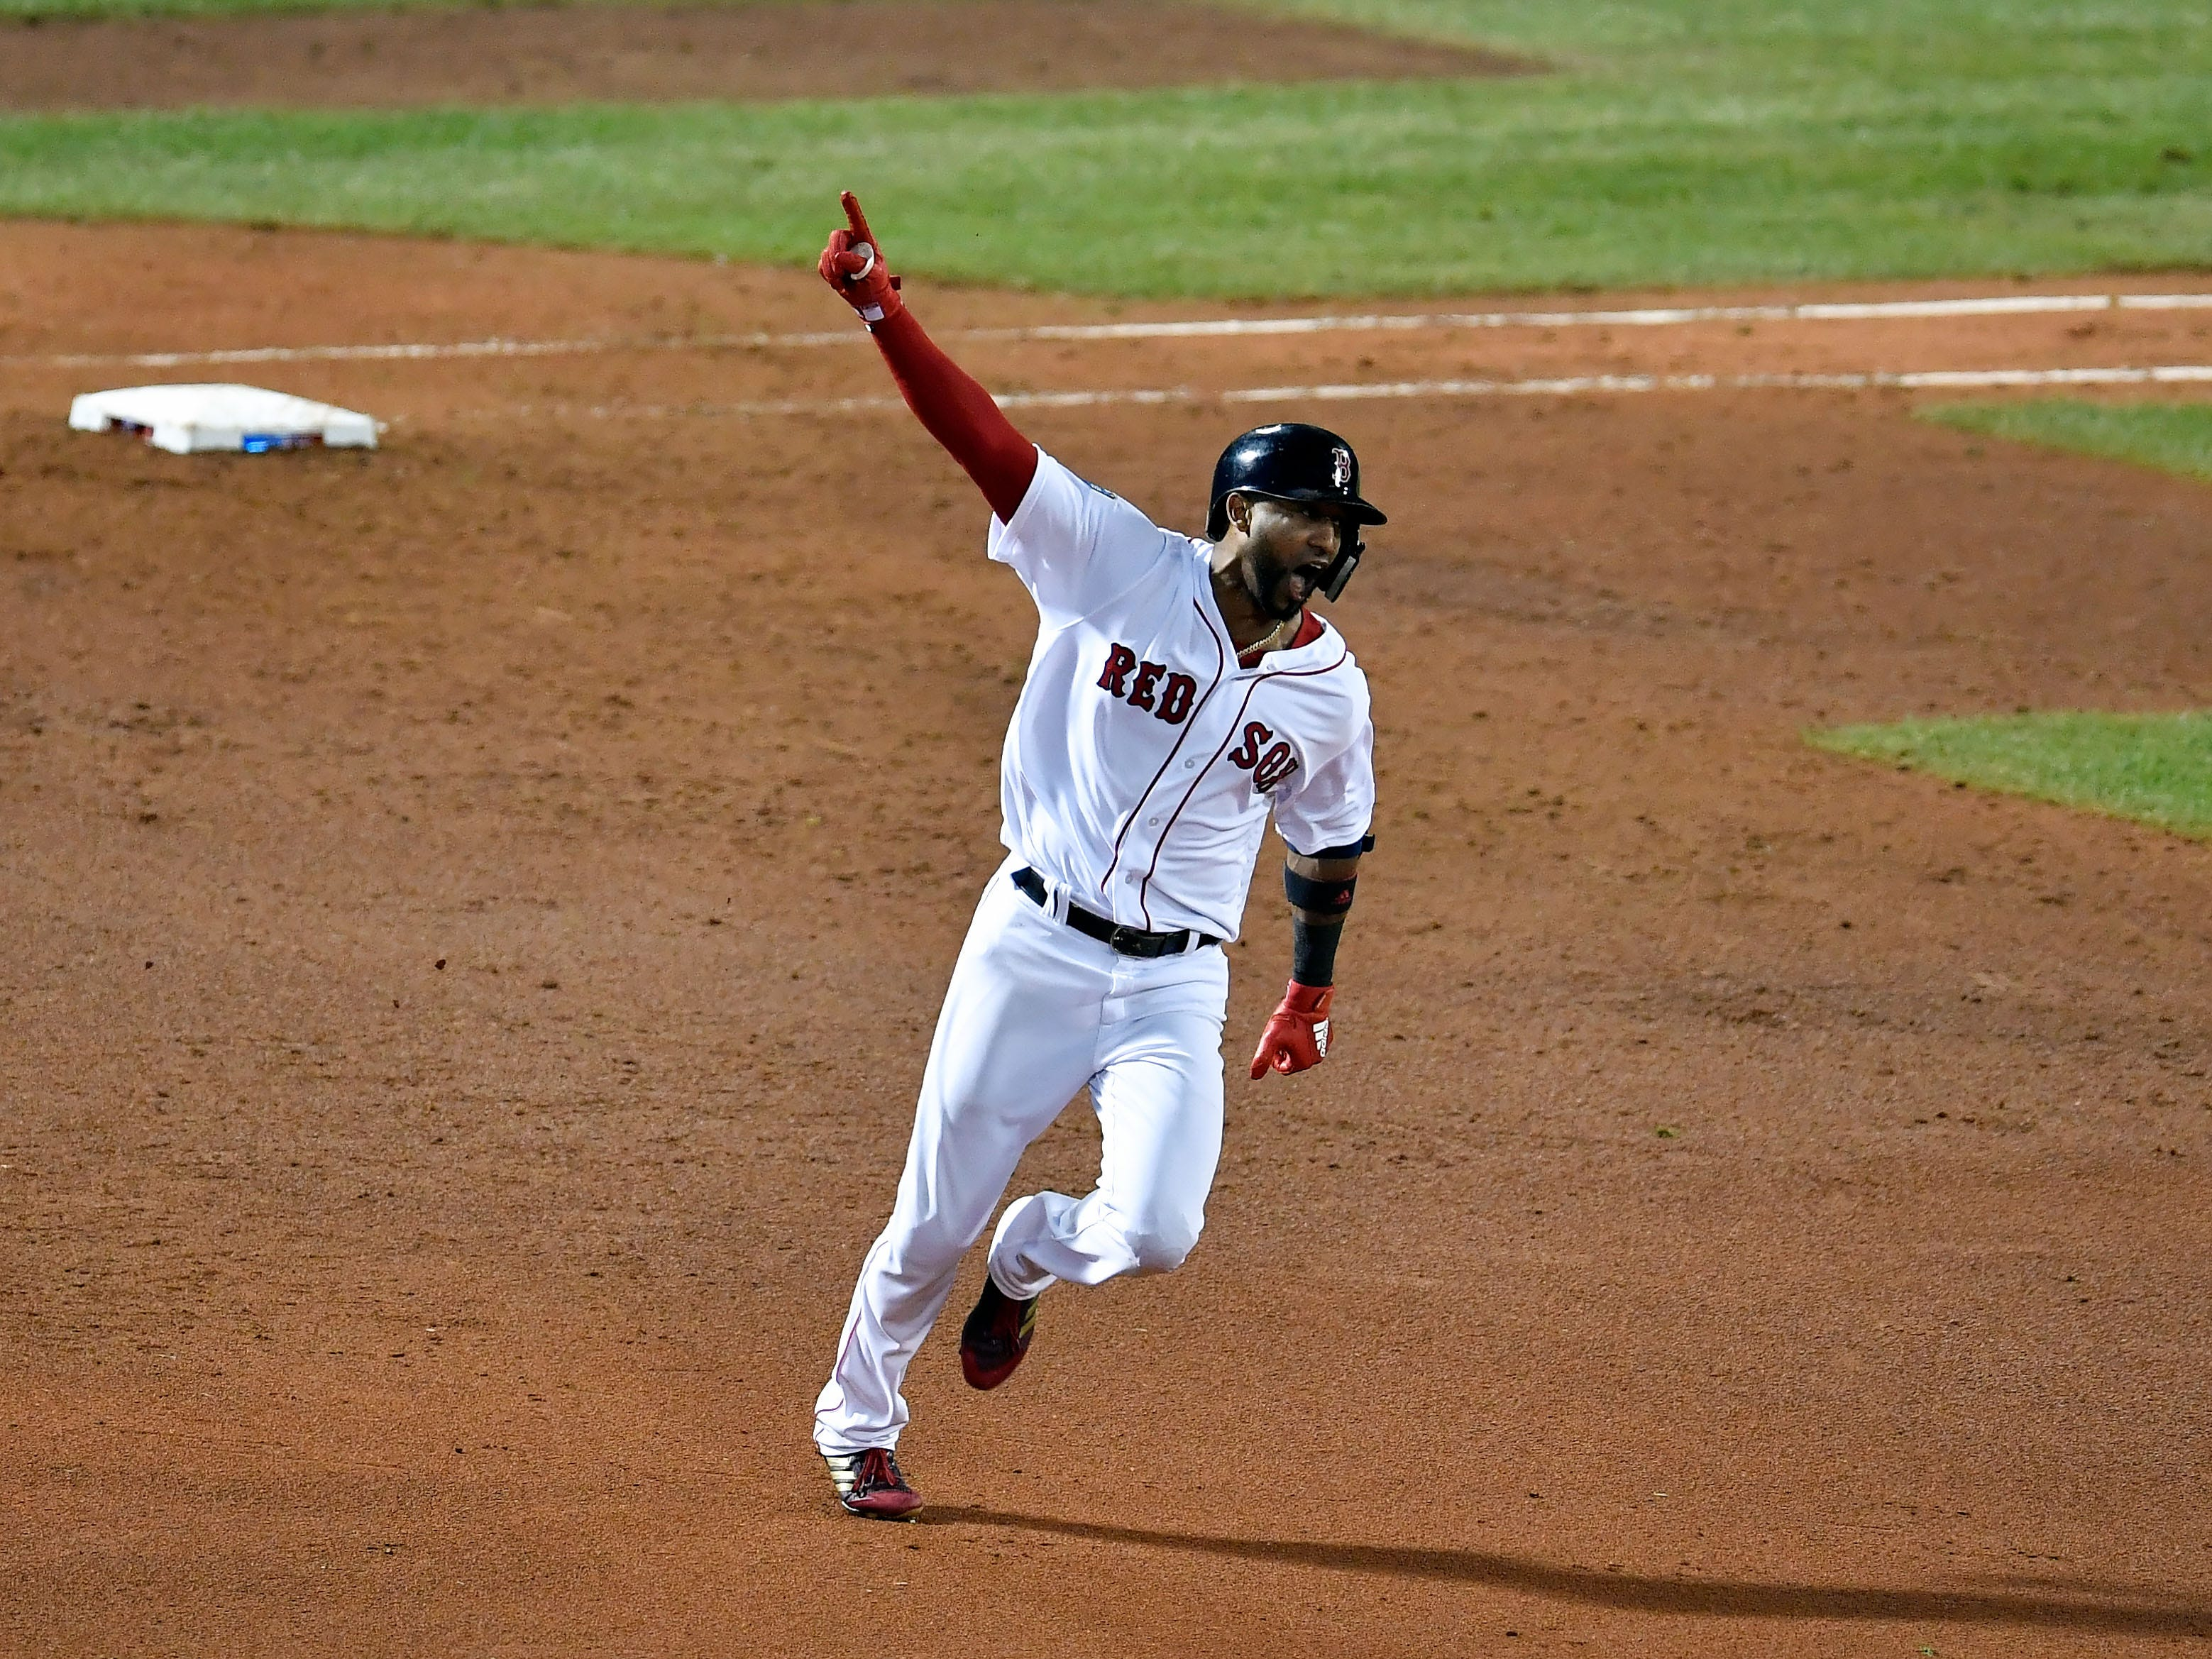 Oct. 23: Boston Red Sox pinch hitter Eduardo Nunez celebrates after hitting a three-run home run against the Los Angeles Dodgers during the seventh inning in Game 1 of the World Series.